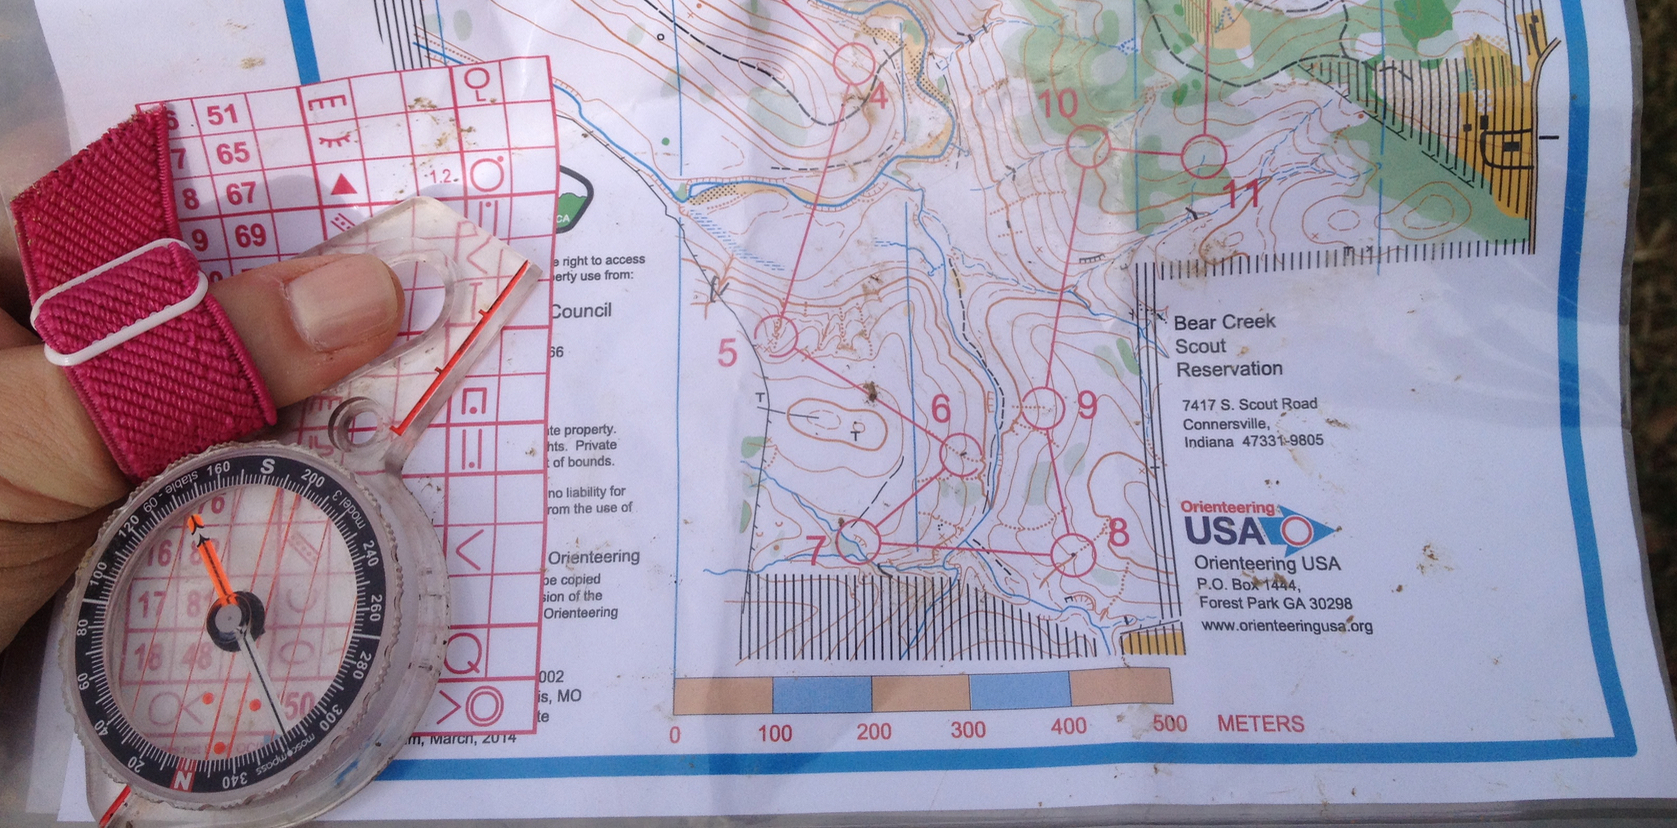 FIND YOUR WAY WITH NORTH TEXAS ORIENTEERING